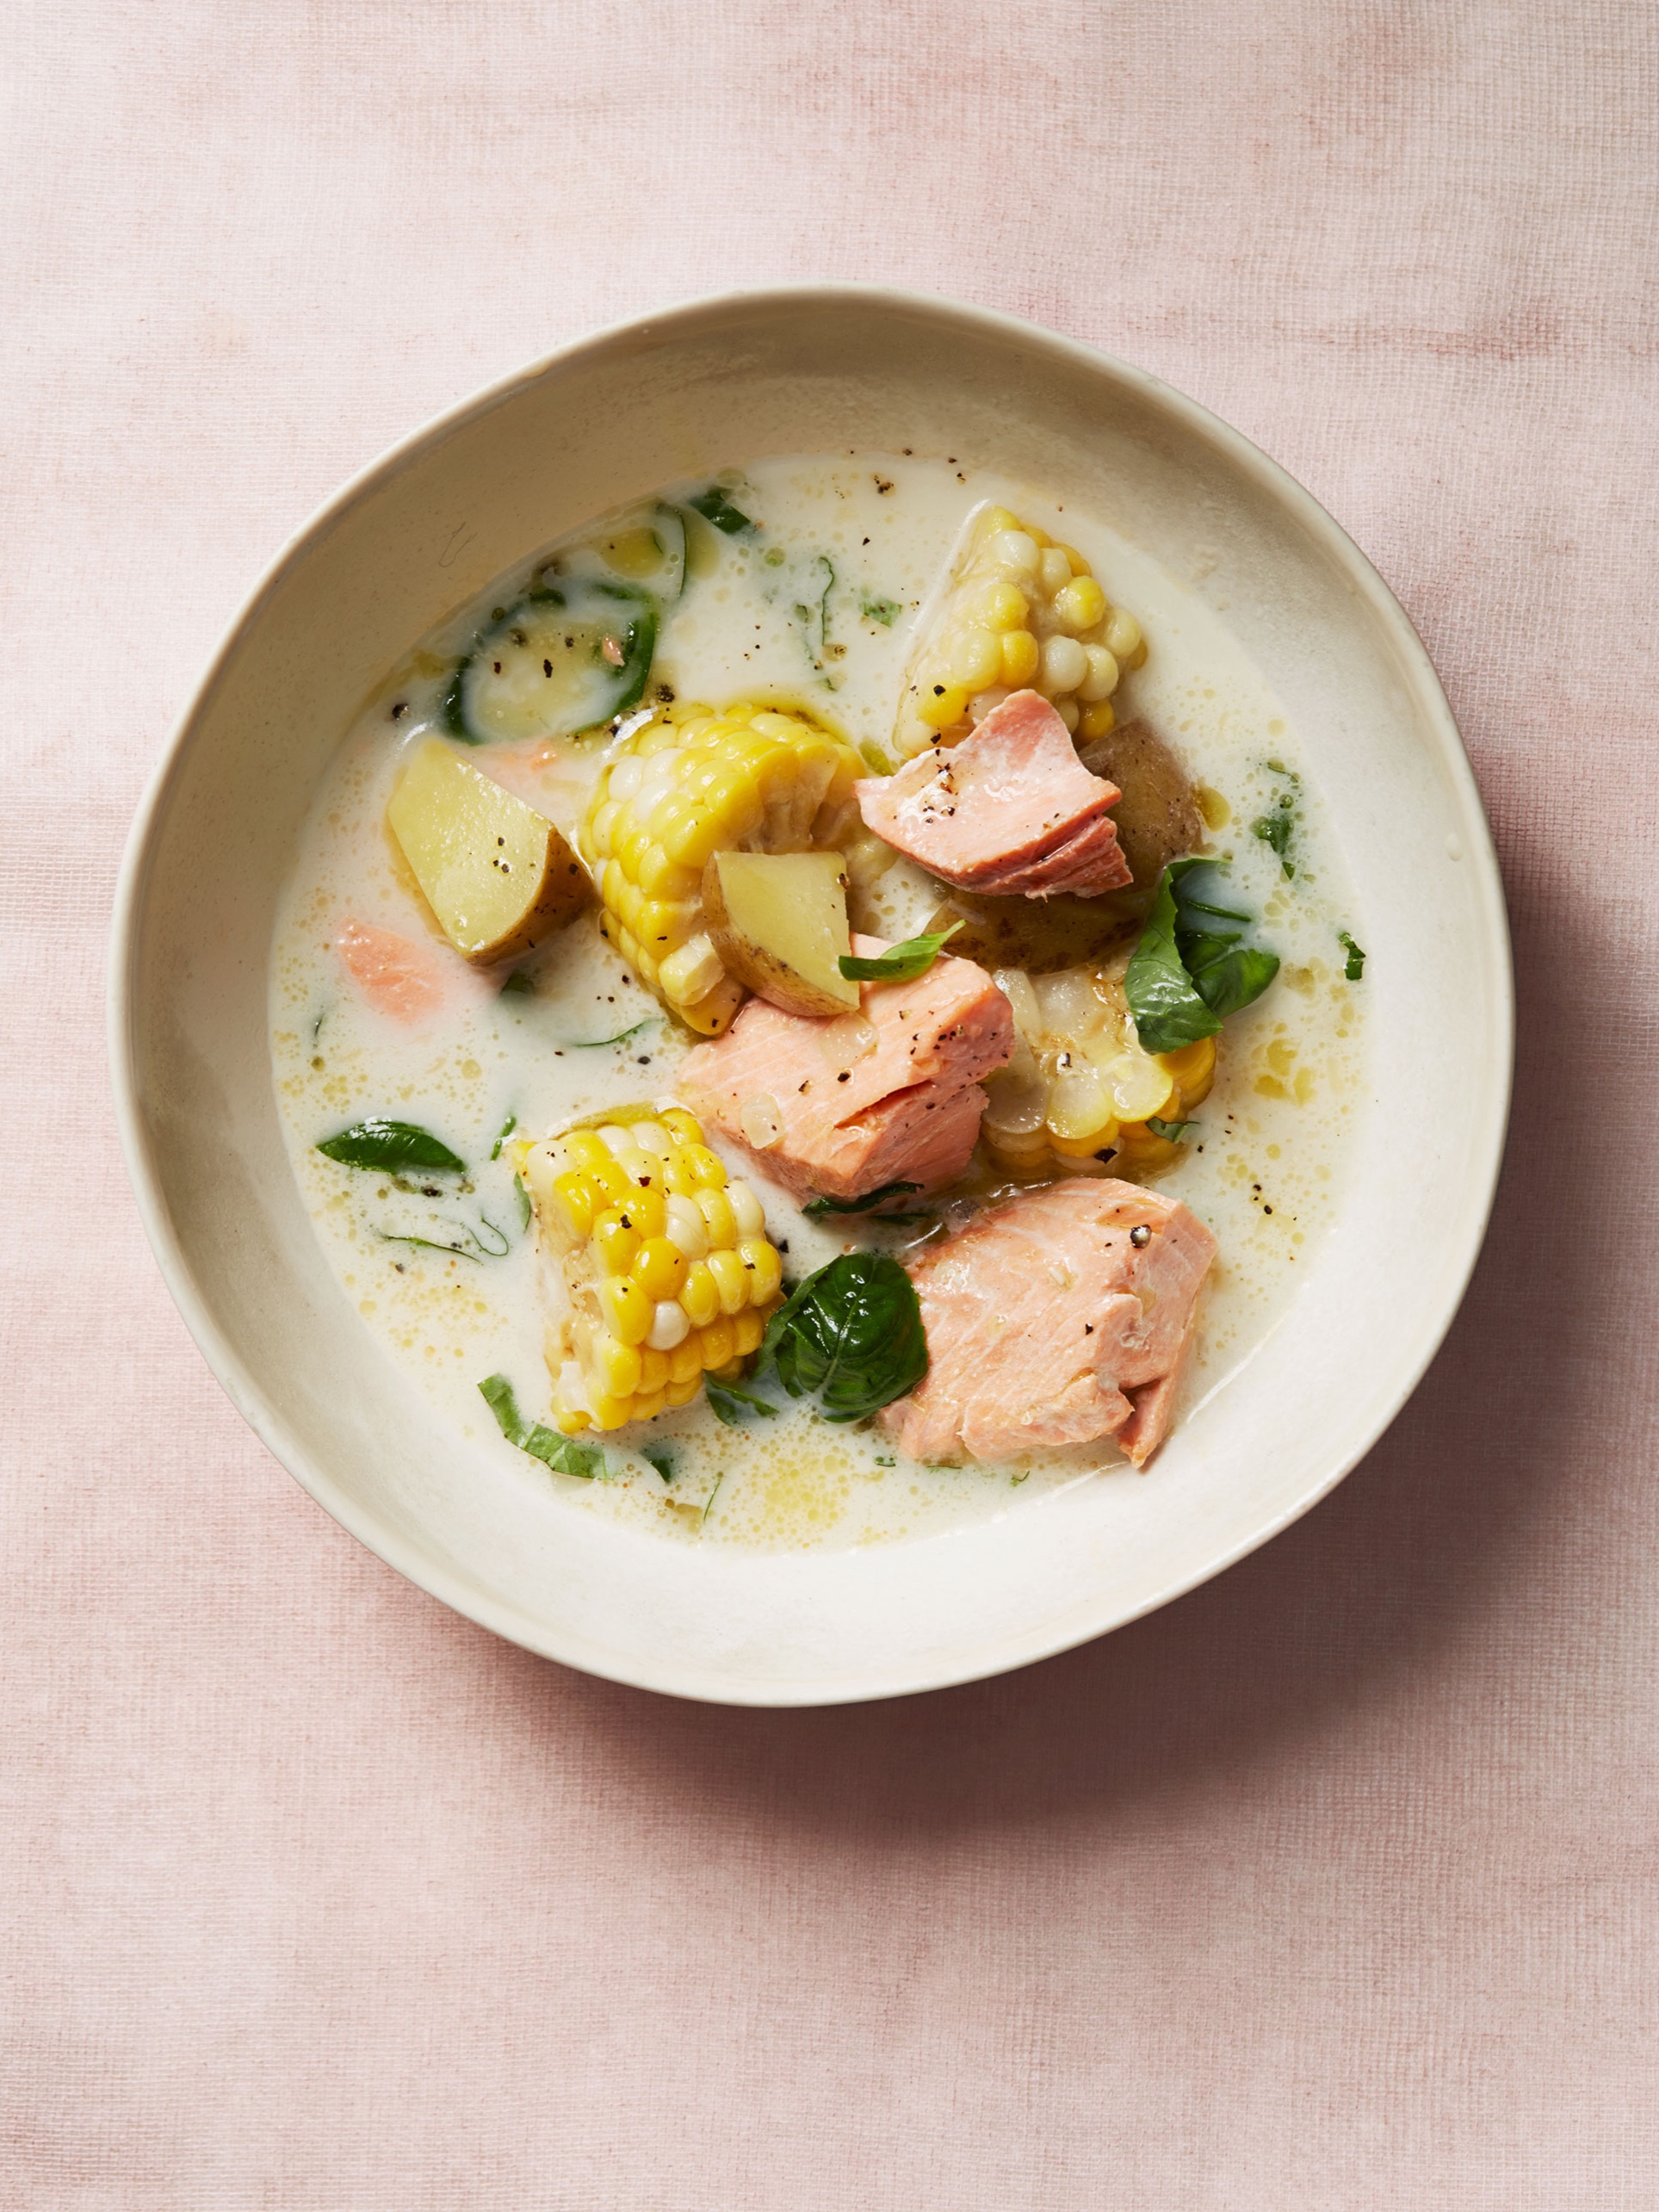 Salmon-and-Corn-Chowder-with-Basil-and-Potatoes-0267-AR-6319383.jpg